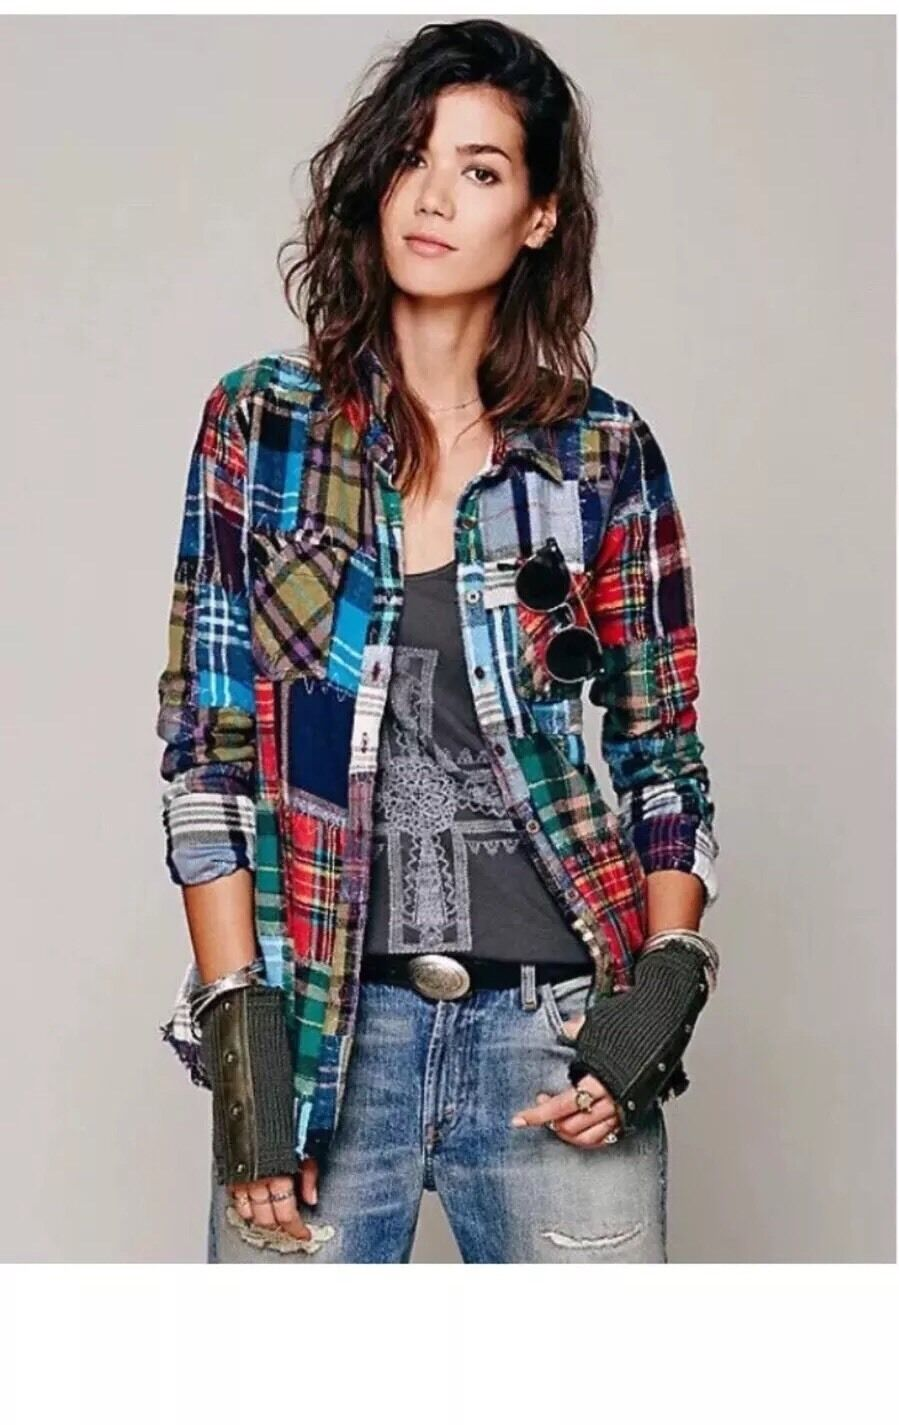 Free People Patchwork Lost In Plaid Flannel Shirt  Top Buttondown Small RARE